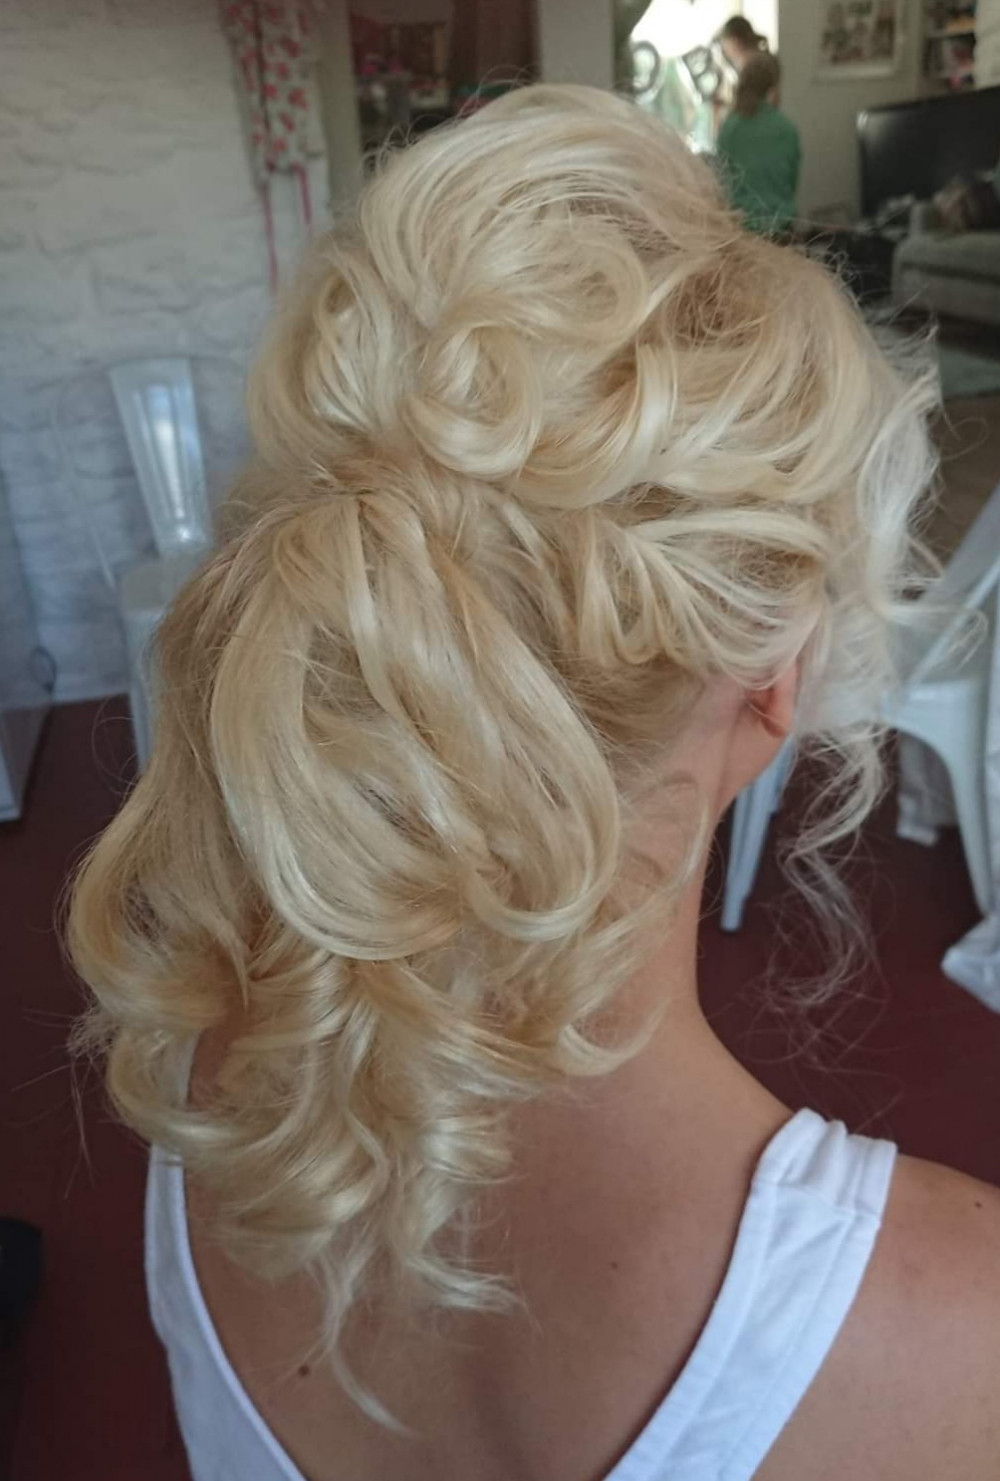 - Make Me Bridal Artist: Beautystyle. Photography by: My own image. #bohemian #bridalhair #bridalhairstylist #bohobride #relaxedhairup #ponytail